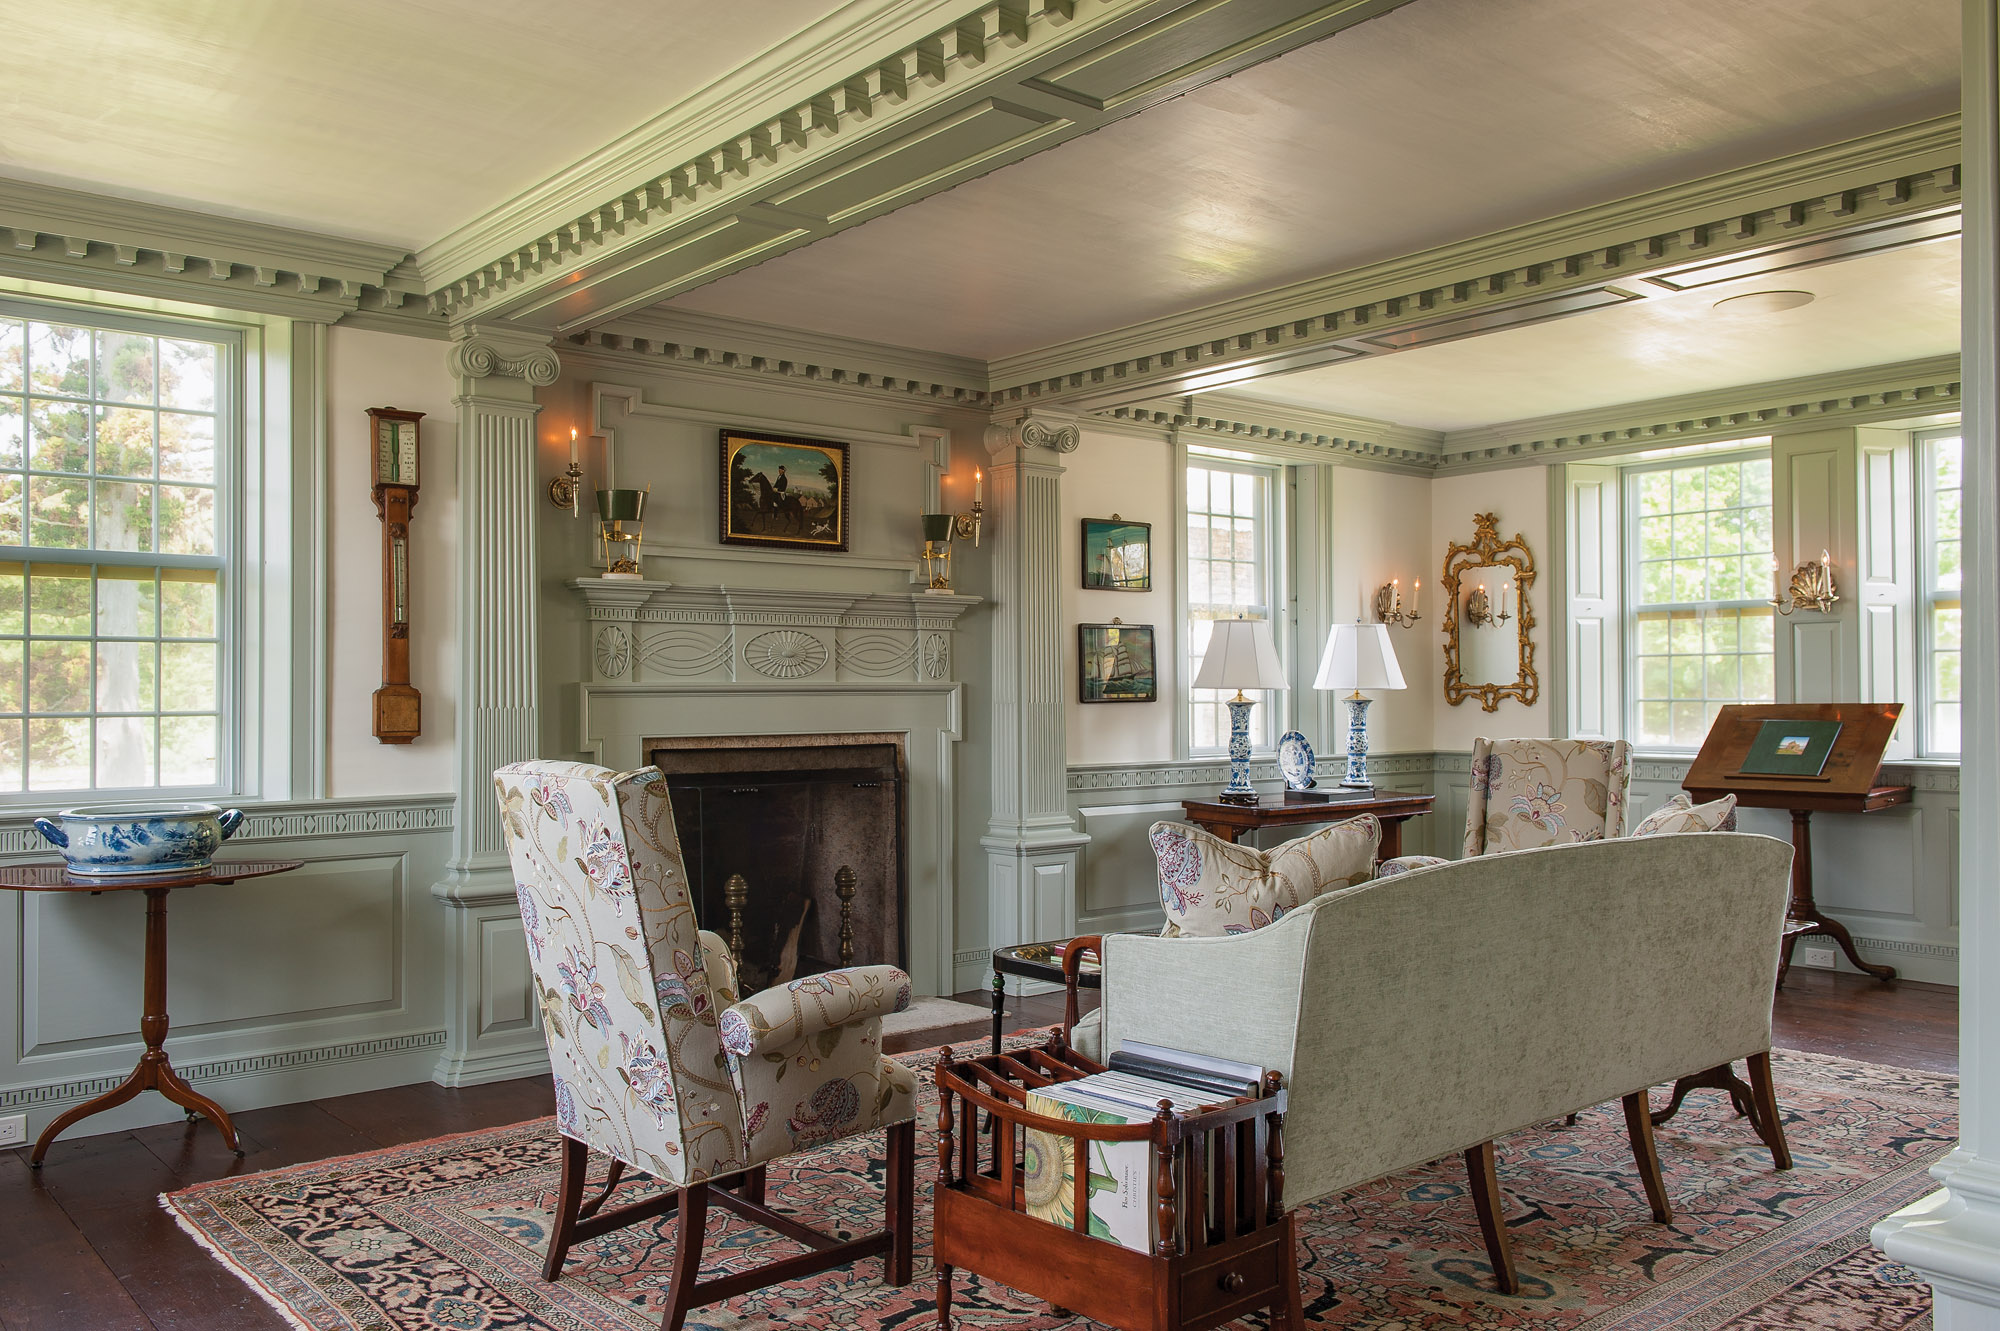 The living room's Georgian elements include a fireplace with a bolection moulding surround, pilasters with Corinthian capitals, deep dentil moulding, and a paneled wainscot. Two summer beams accentuate the fireplace wall.